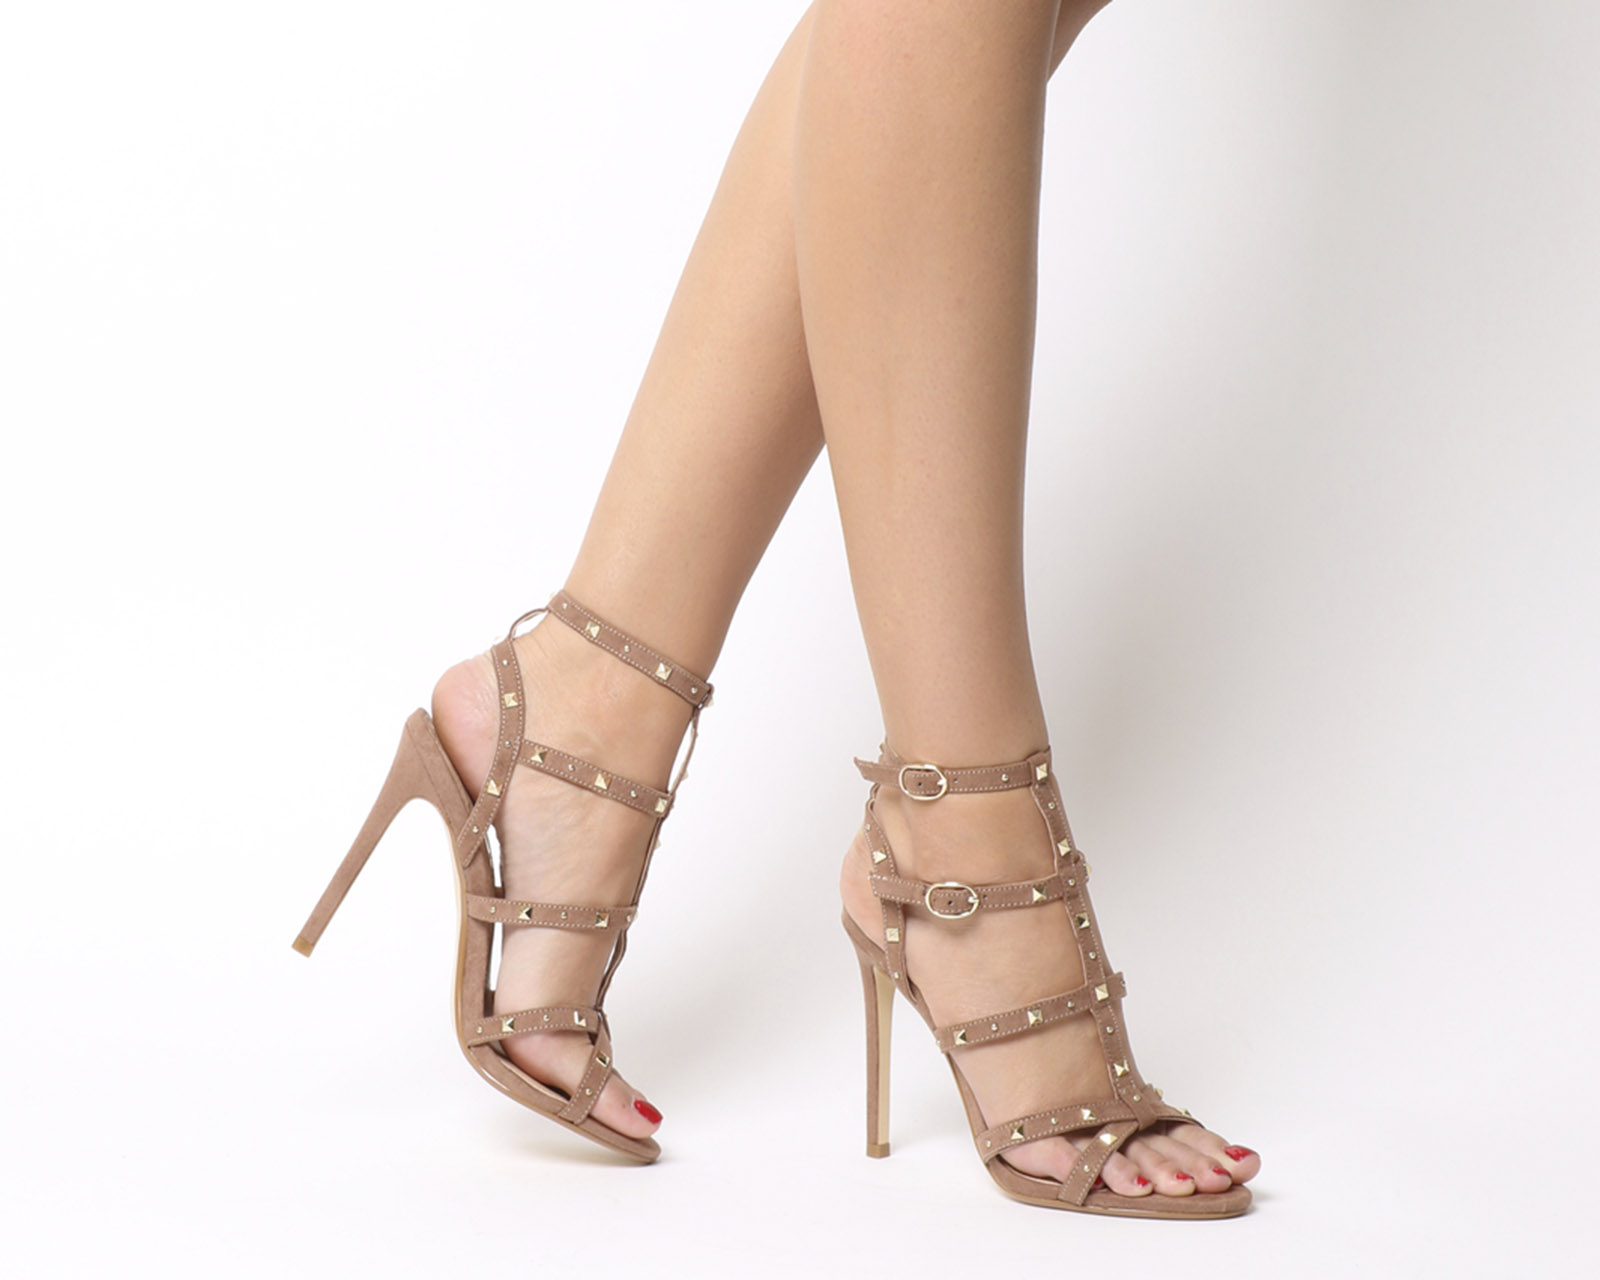 056c29e193b Sentinel Womens Office Hightide Studded Stiletto Sandals Nude Gold Studs  Heels